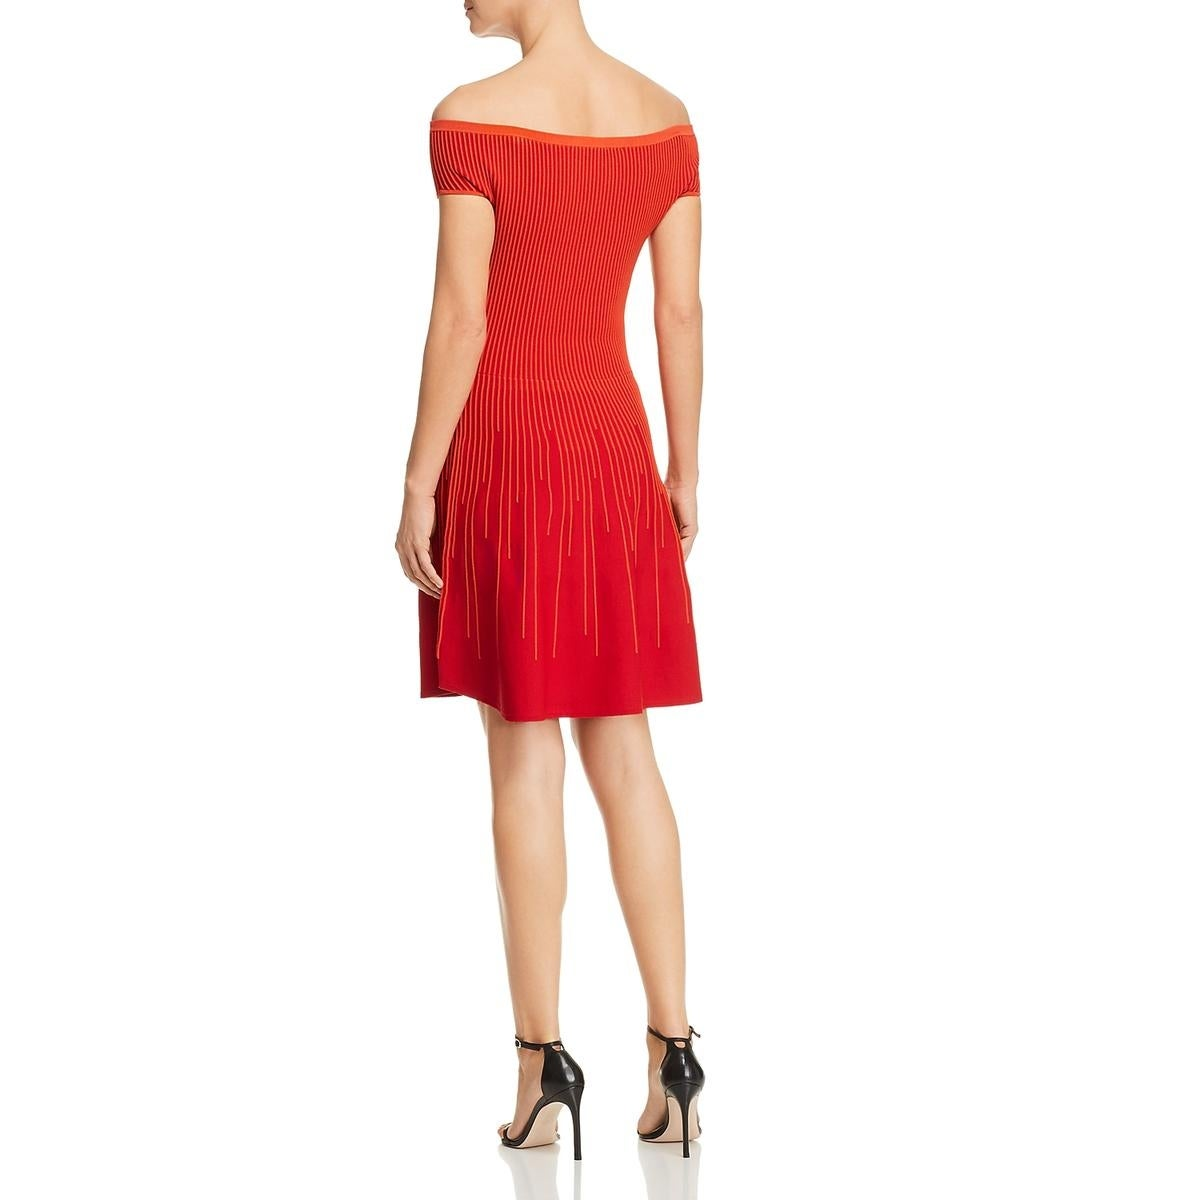 d2c80083f52 Shop French Connection Womens Olivia Cocktail Dress Crepe Off-The-Shoulder  - Free Shipping On Orders Over  45 - Overstock.com - 24208469